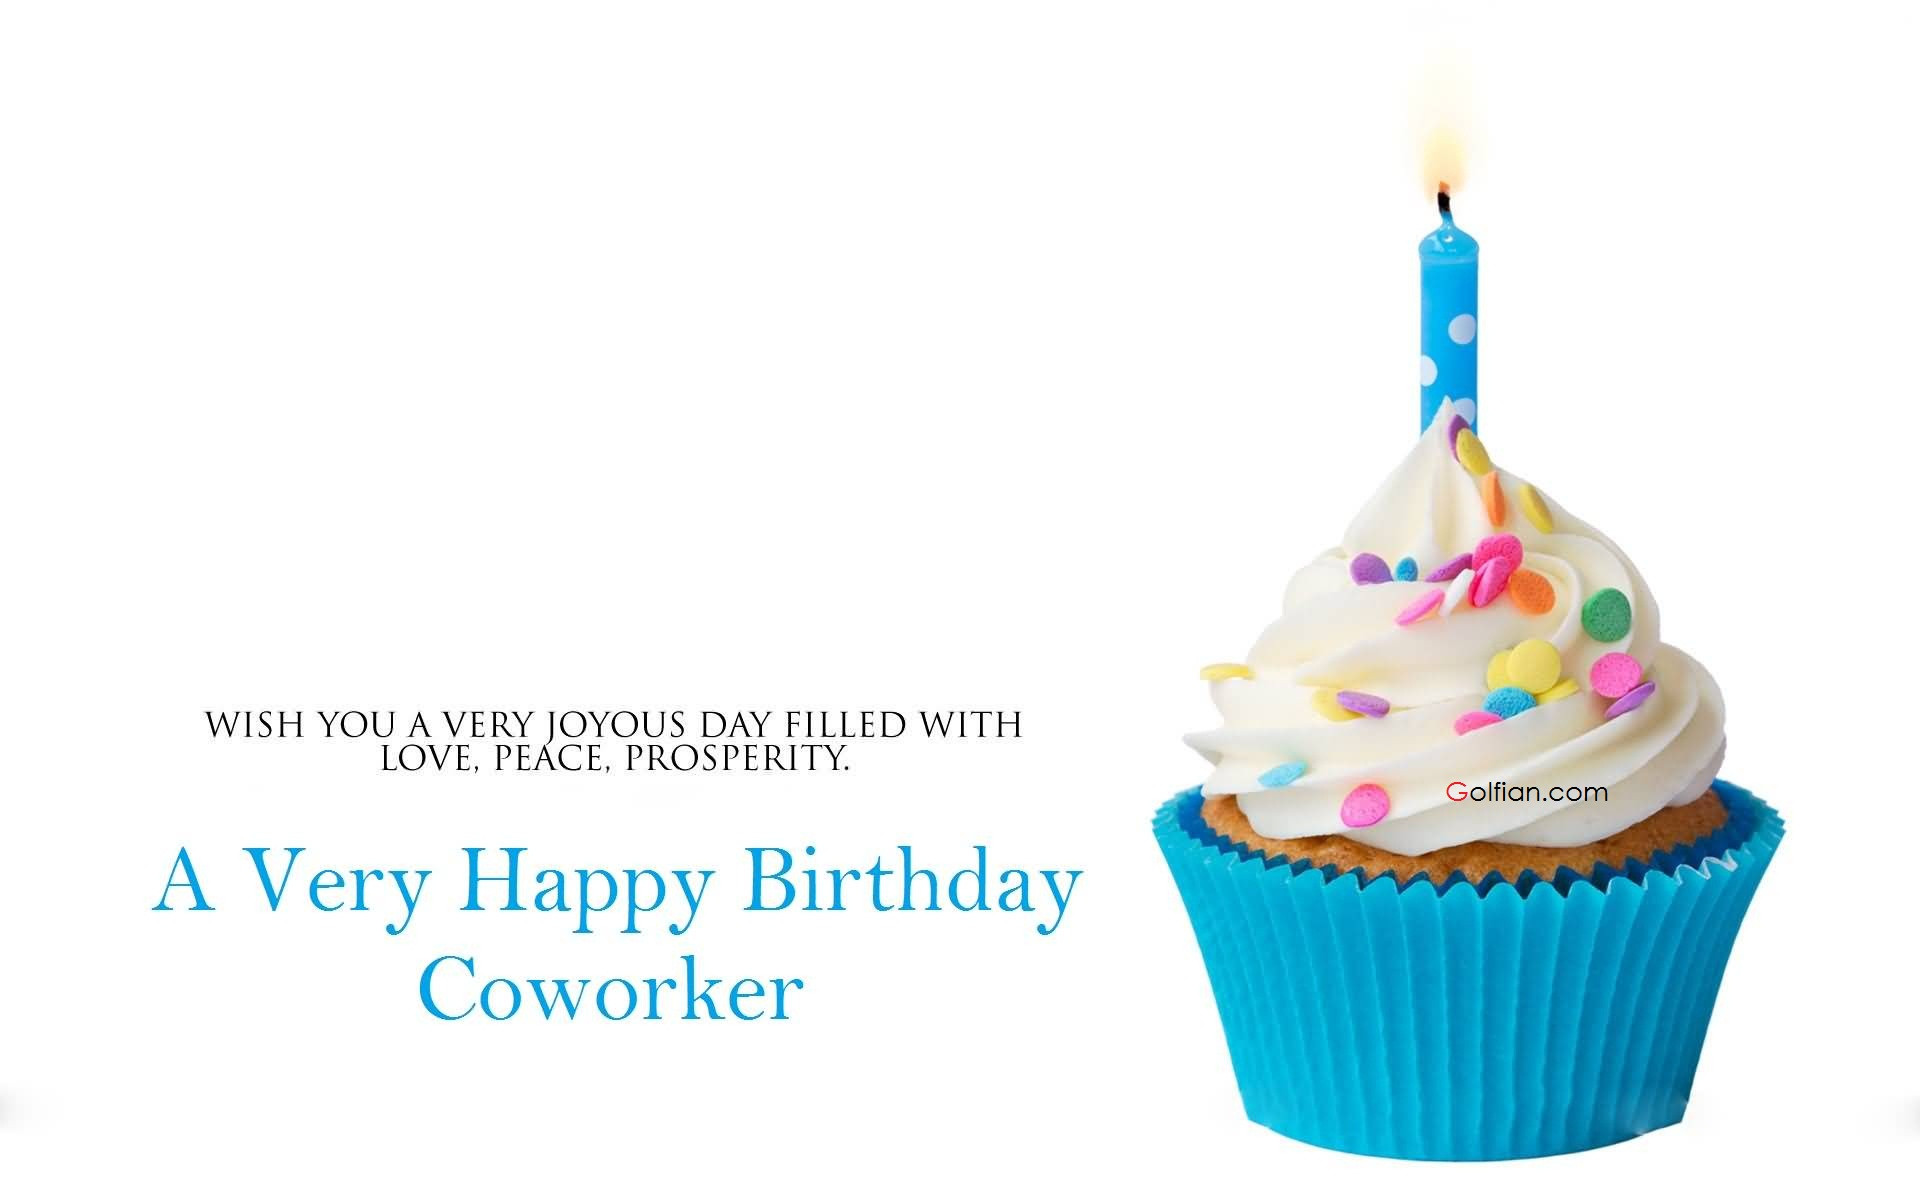 Best ideas about Coworker Birthday Wish . Save or Pin 60 Beautiful Birthday Wishes For Coworker – Latest Now.